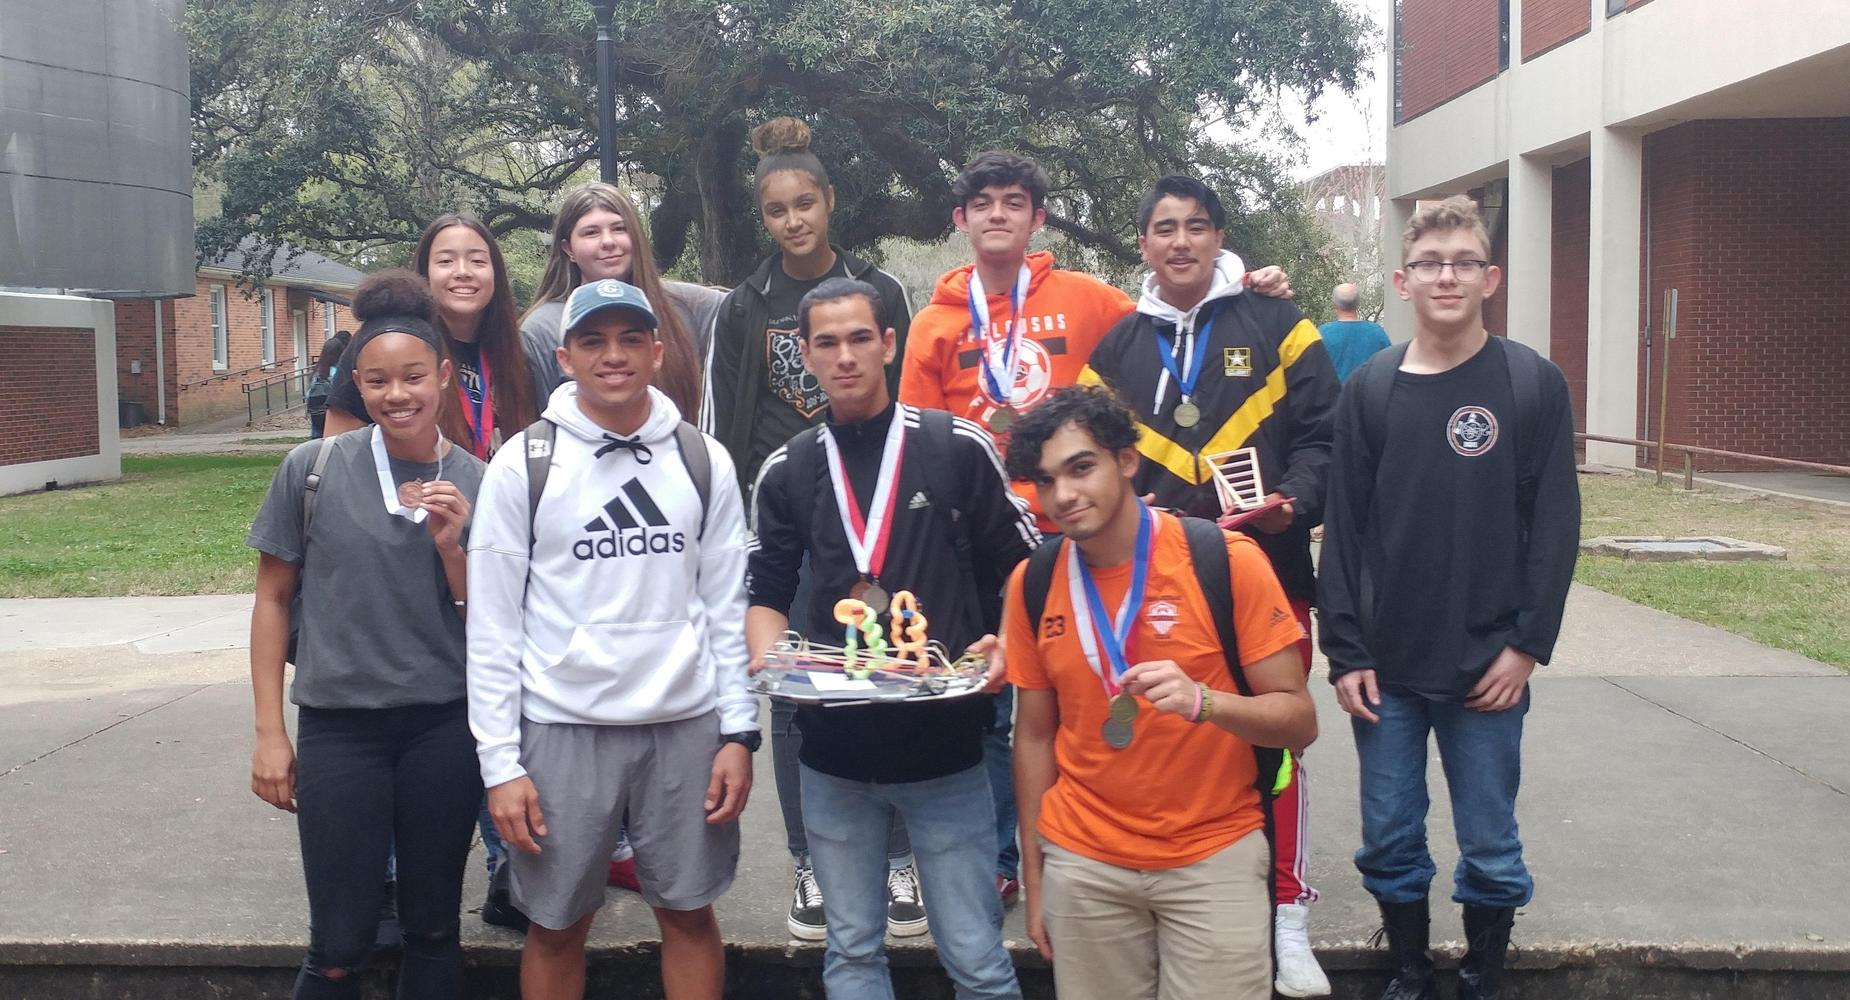 Opelousas High School's Science Olympiad Team earned fourth place at the Louisiana Region II competition held at the University of Louisiana-Lafayette on Saturday, March 9 and qualified for the state competition to be held at Southeastern Louisiana University on April 13.